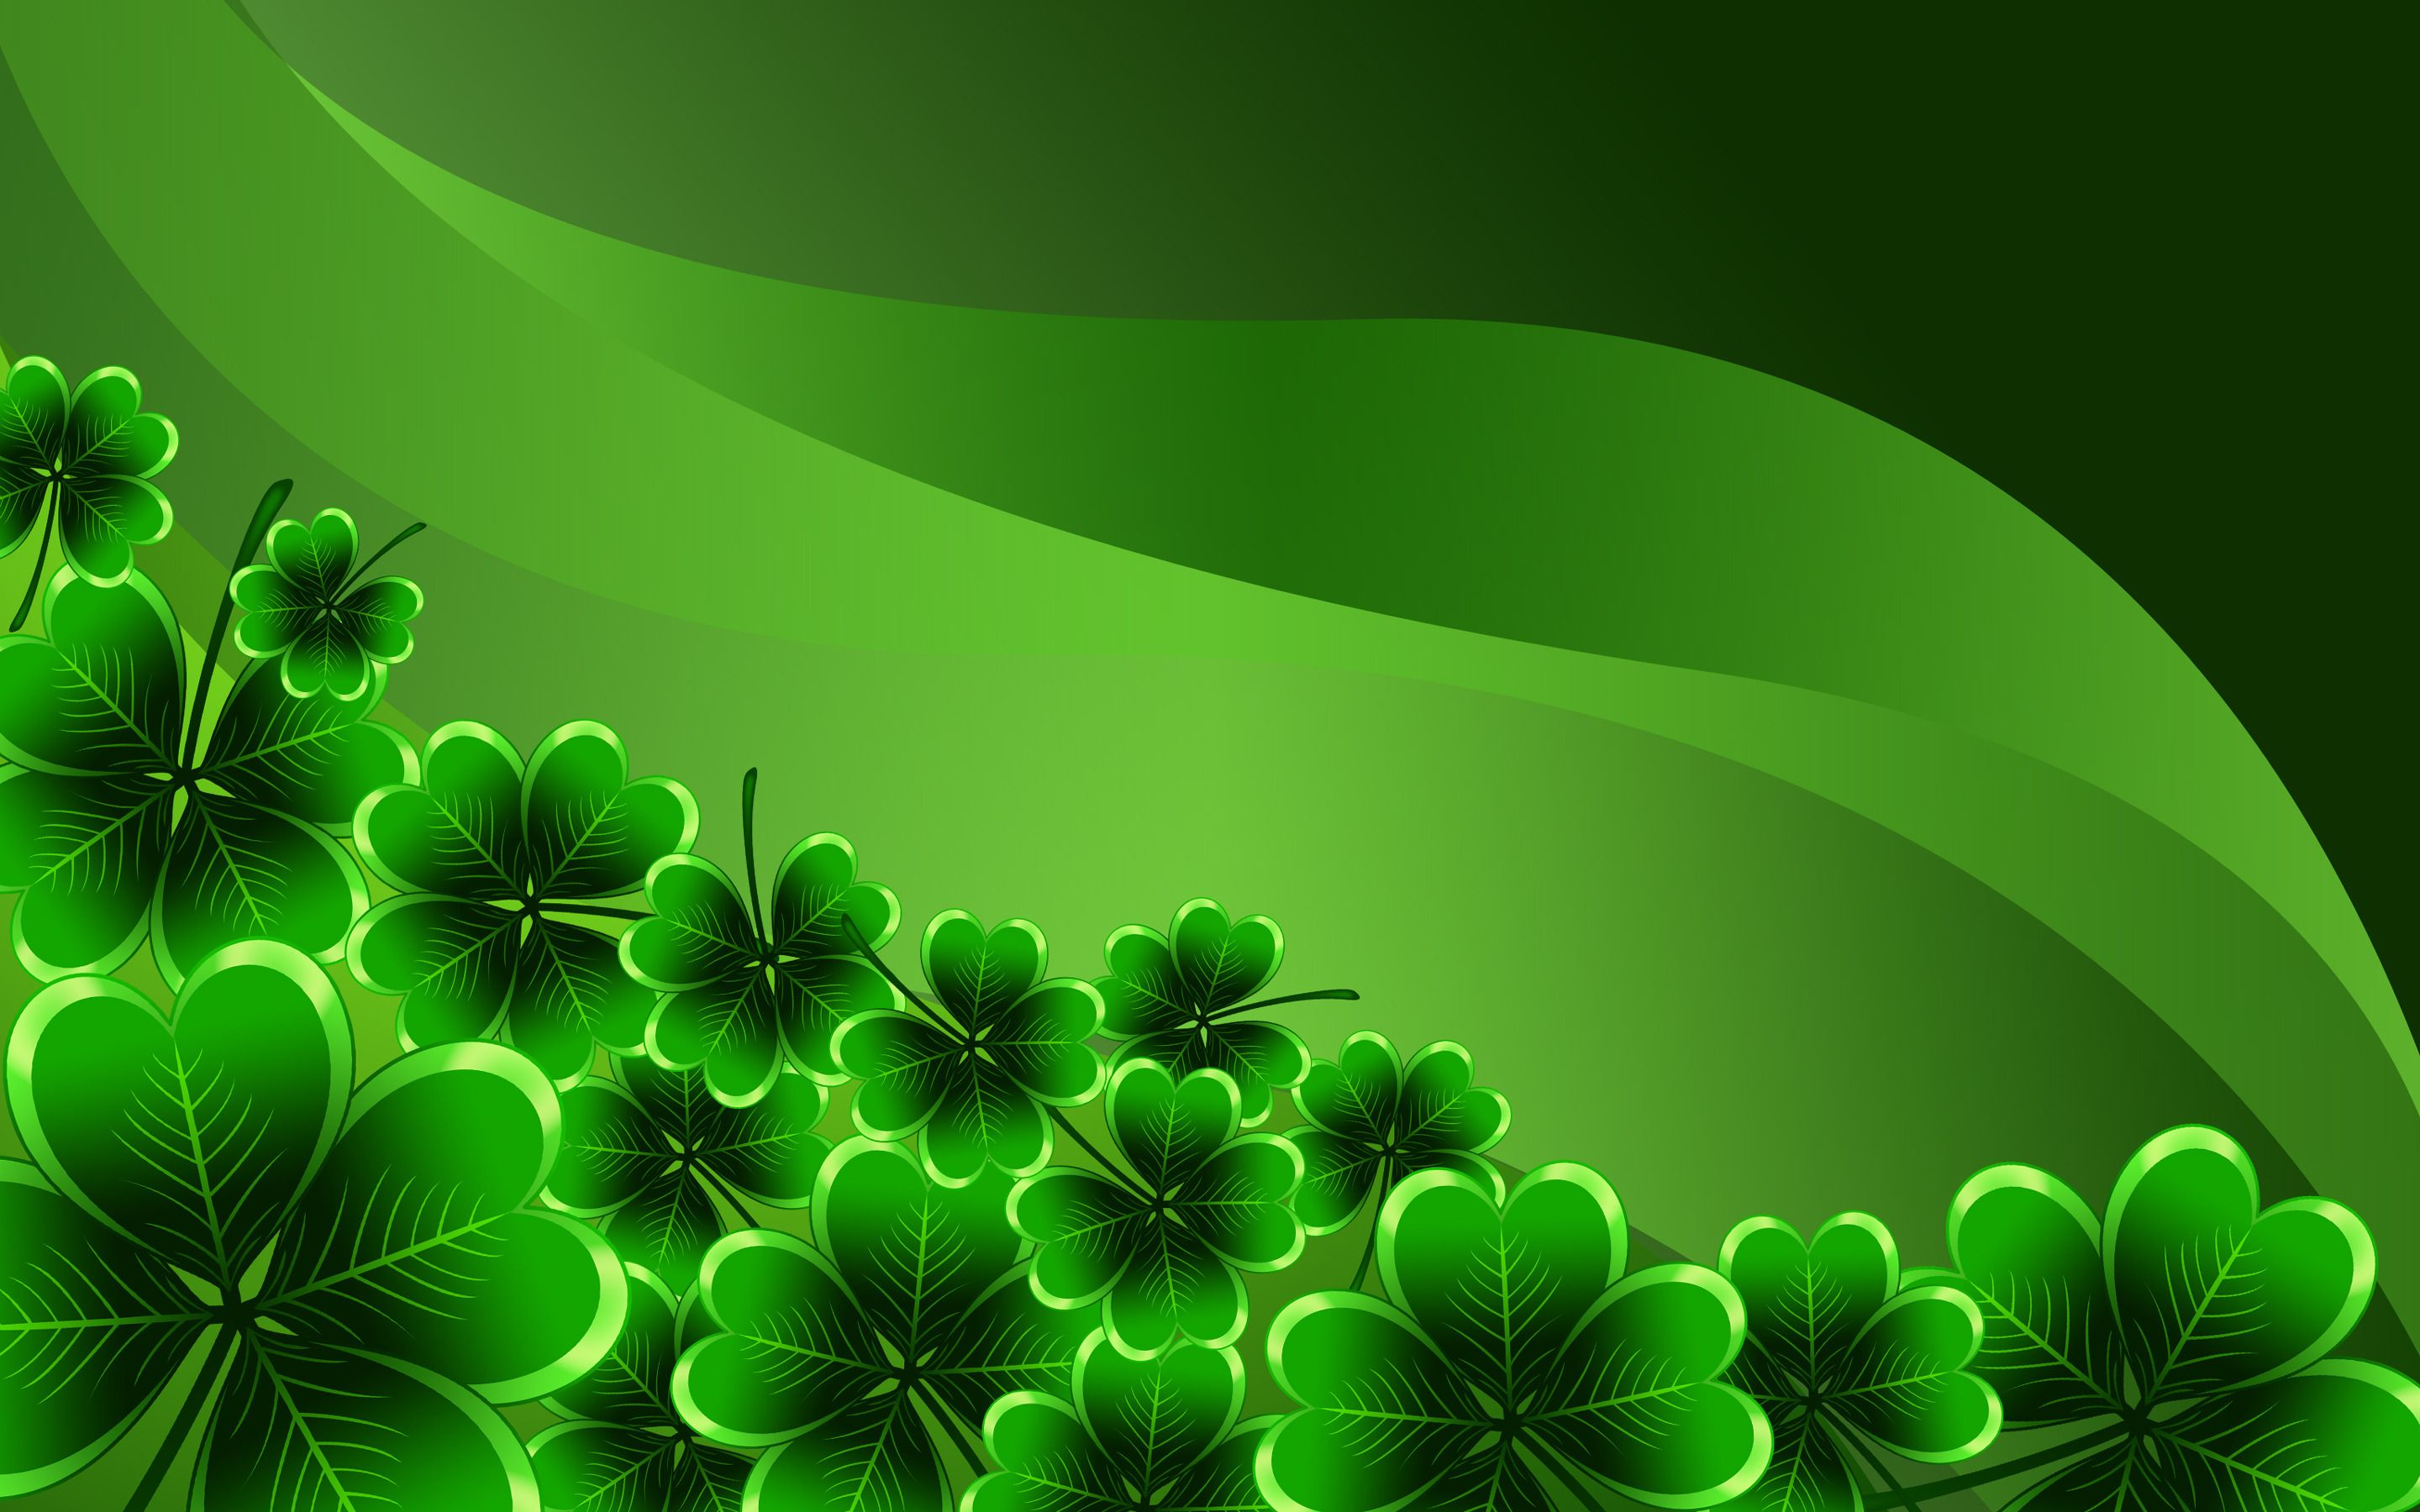 st patrick wallpapers 1920x1080 shamrocks wallpaper 19720